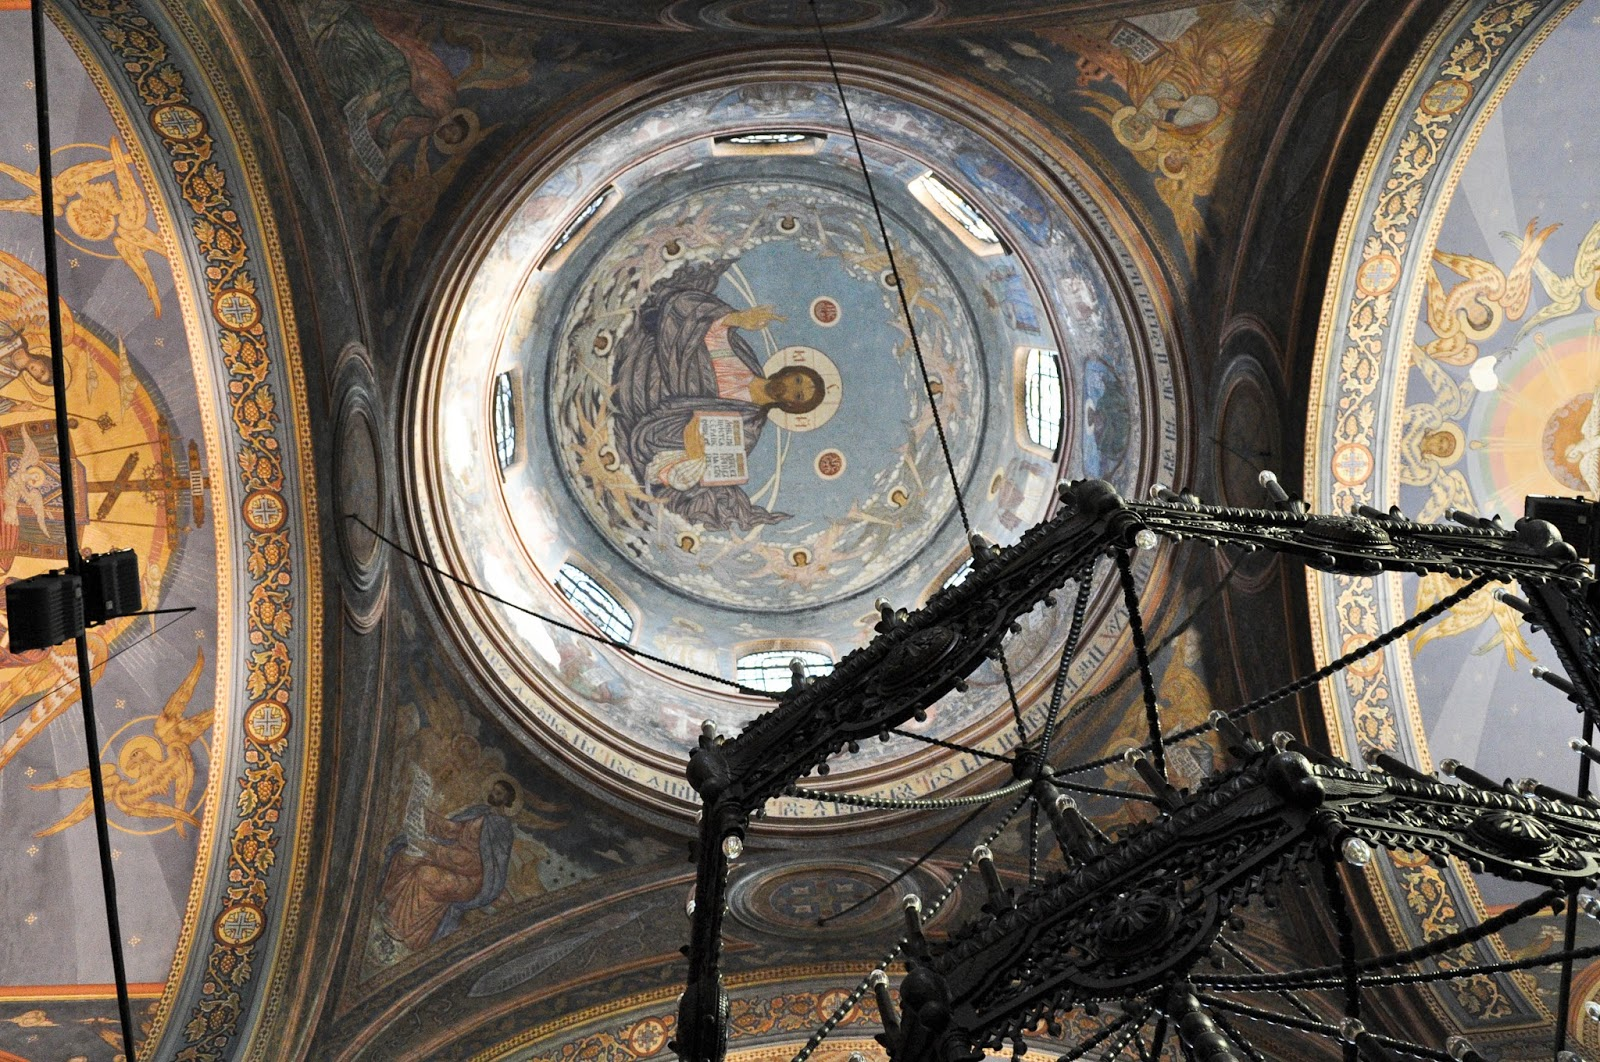 Detail of the frescoed ceilings, Dormition of the Mother of God Cathedral, Varna